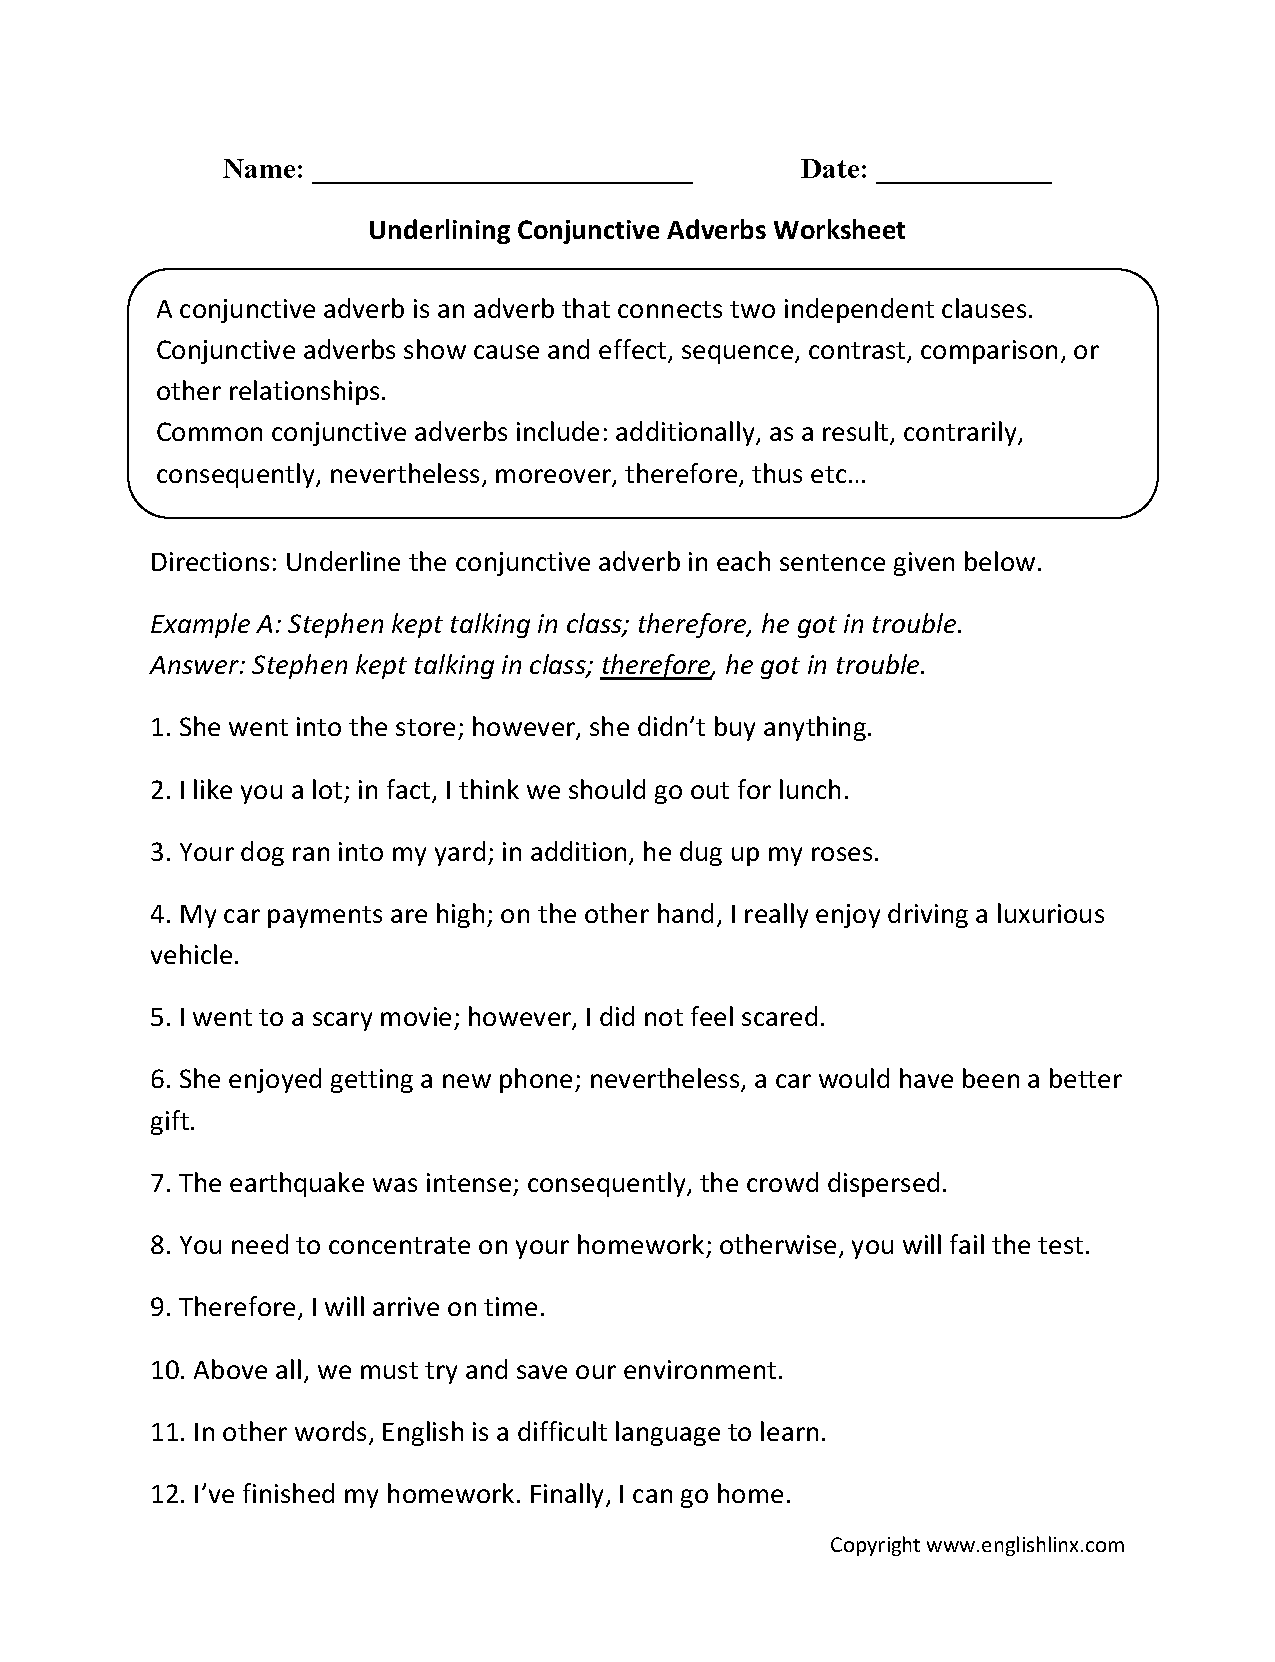 Weirdmailus  Outstanding Englishlinxcom  Conjunctions Worksheets With Outstanding Worksheet With Delectable Free Halloween Worksheets For Kids Also Pythagoras Problems Worksheet In Addition Linear Equations Practice Worksheets And Ou Sound Worksheet As Well As Class One Maths Worksheet Additionally Excel Combining Worksheets From Englishlinxcom With Weirdmailus  Outstanding Englishlinxcom  Conjunctions Worksheets With Delectable Worksheet And Outstanding Free Halloween Worksheets For Kids Also Pythagoras Problems Worksheet In Addition Linear Equations Practice Worksheets From Englishlinxcom